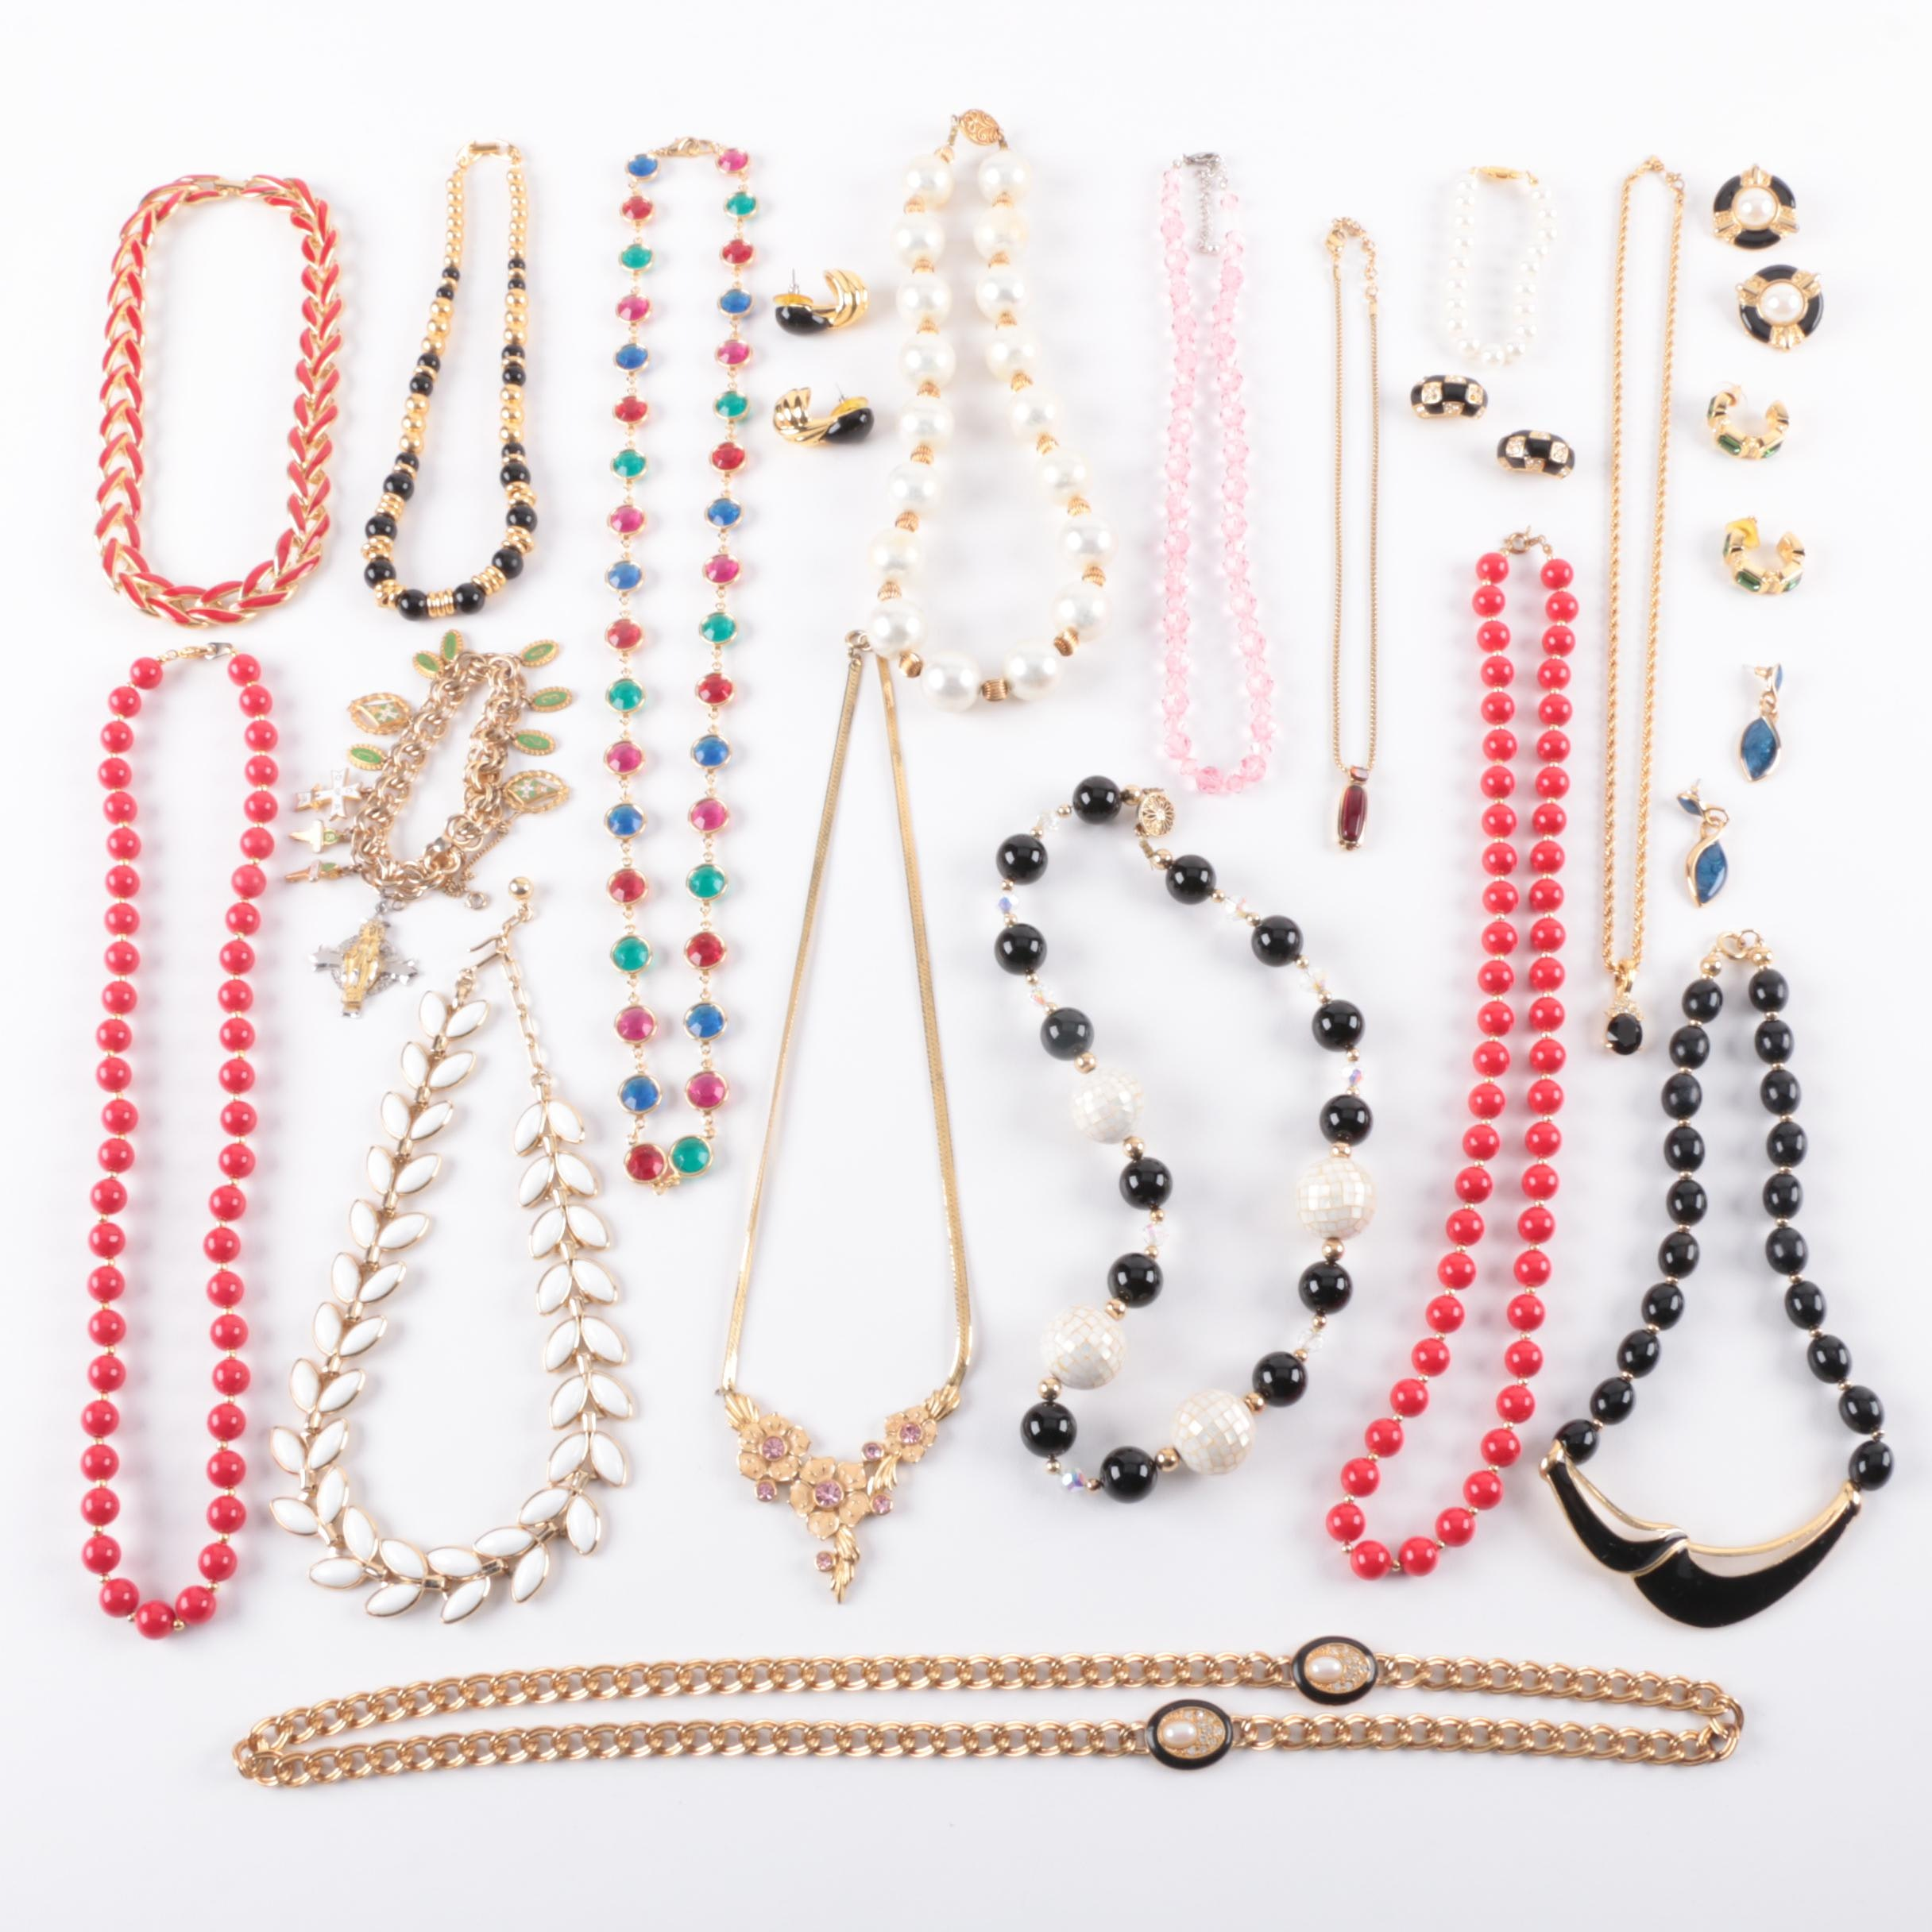 Beaded Costume Jewelry Including Two Sterling Silver Necklaces